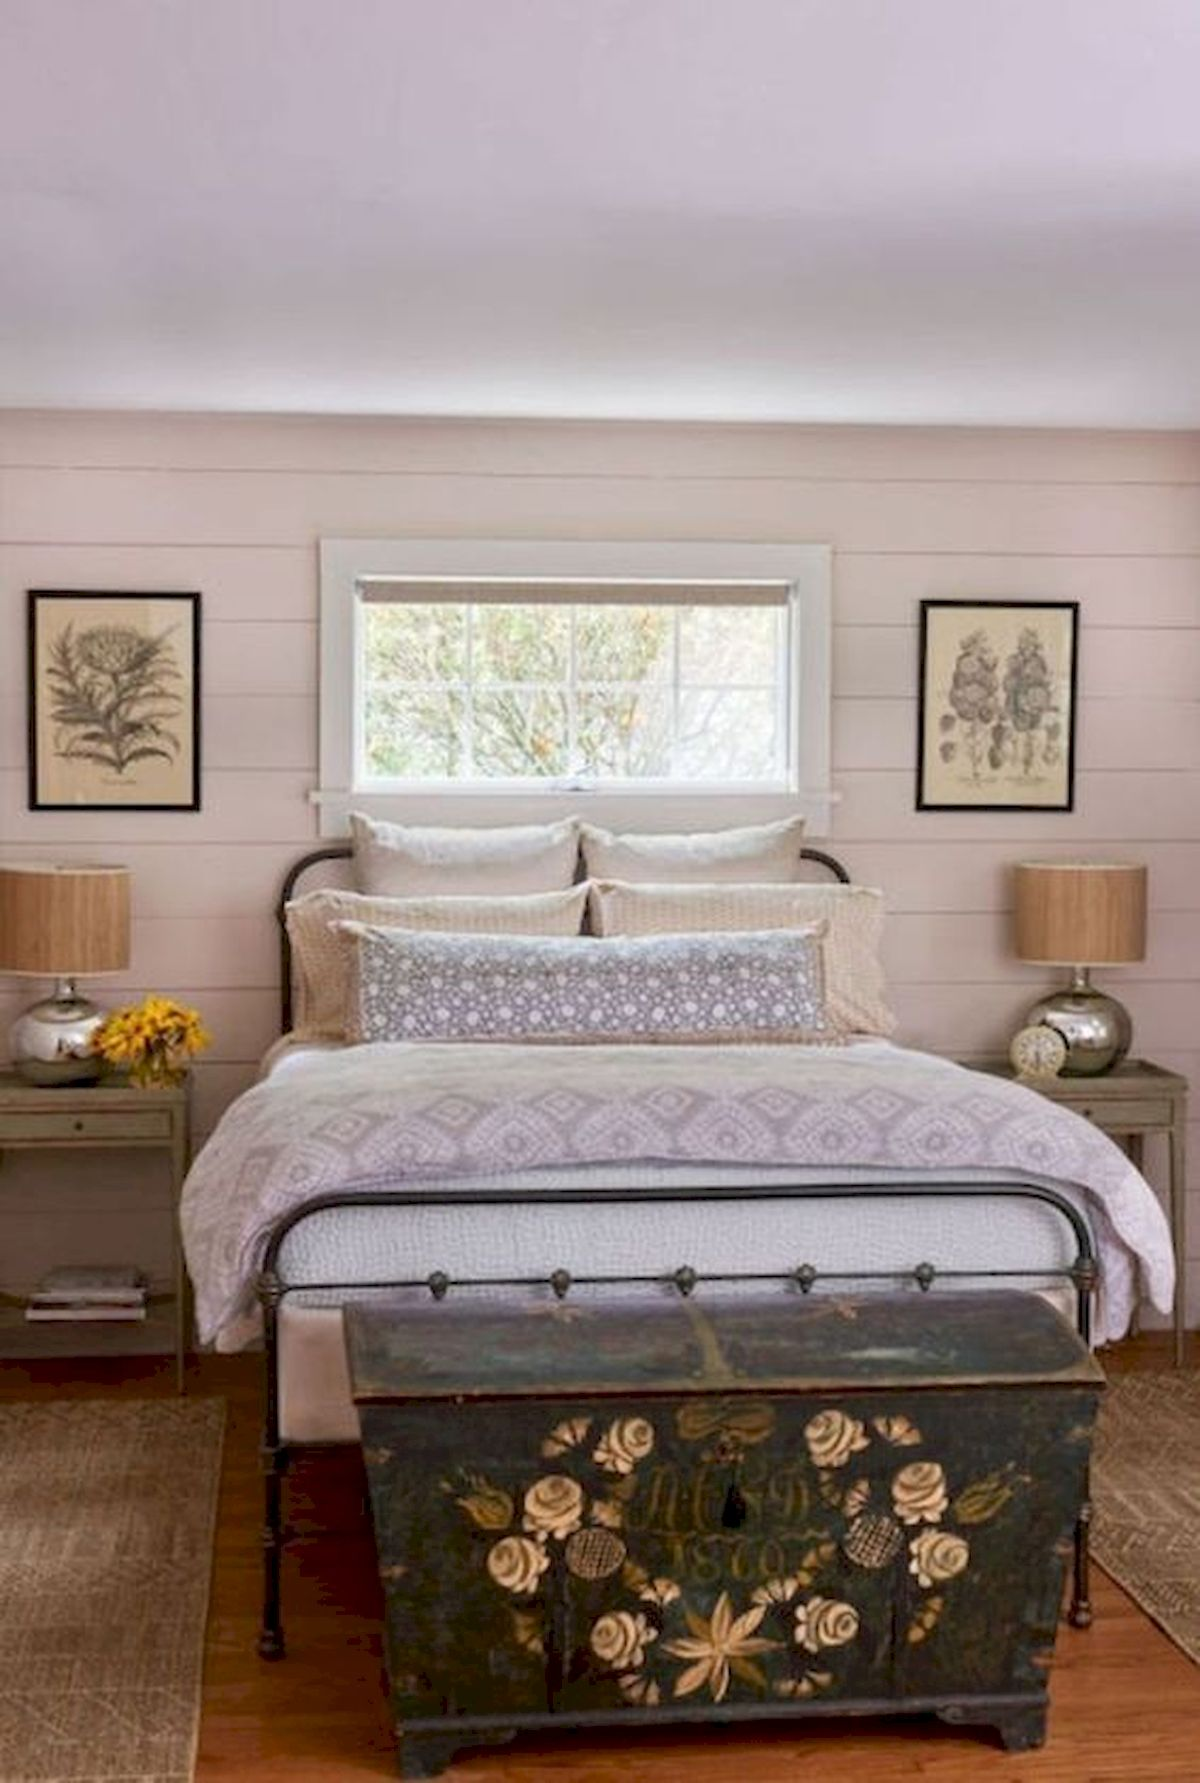 40 Classic Farmhouse Bedroom Design And Decor Ideas That Make Your Home Feel Great (2)